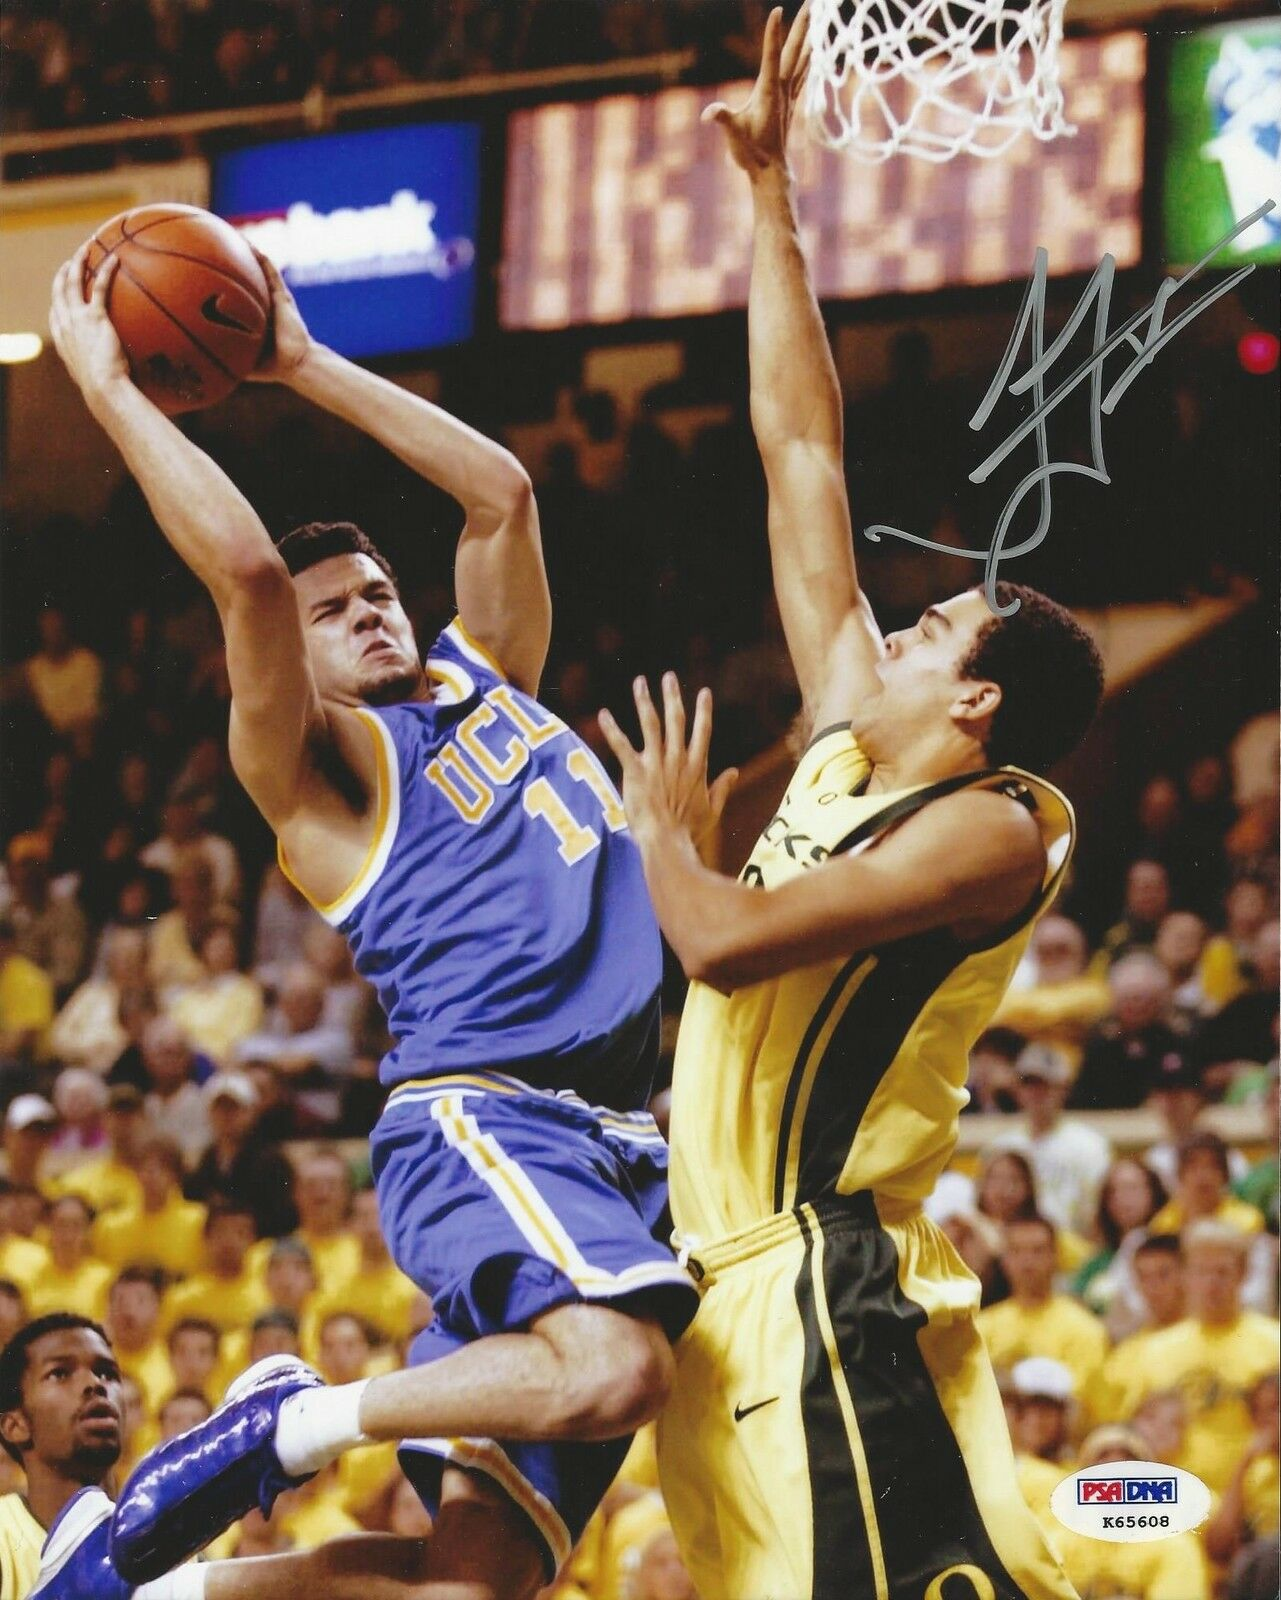 Jordan Farmar UCLA Bruins signed 8X10 Photo PSA/DNA # K65608